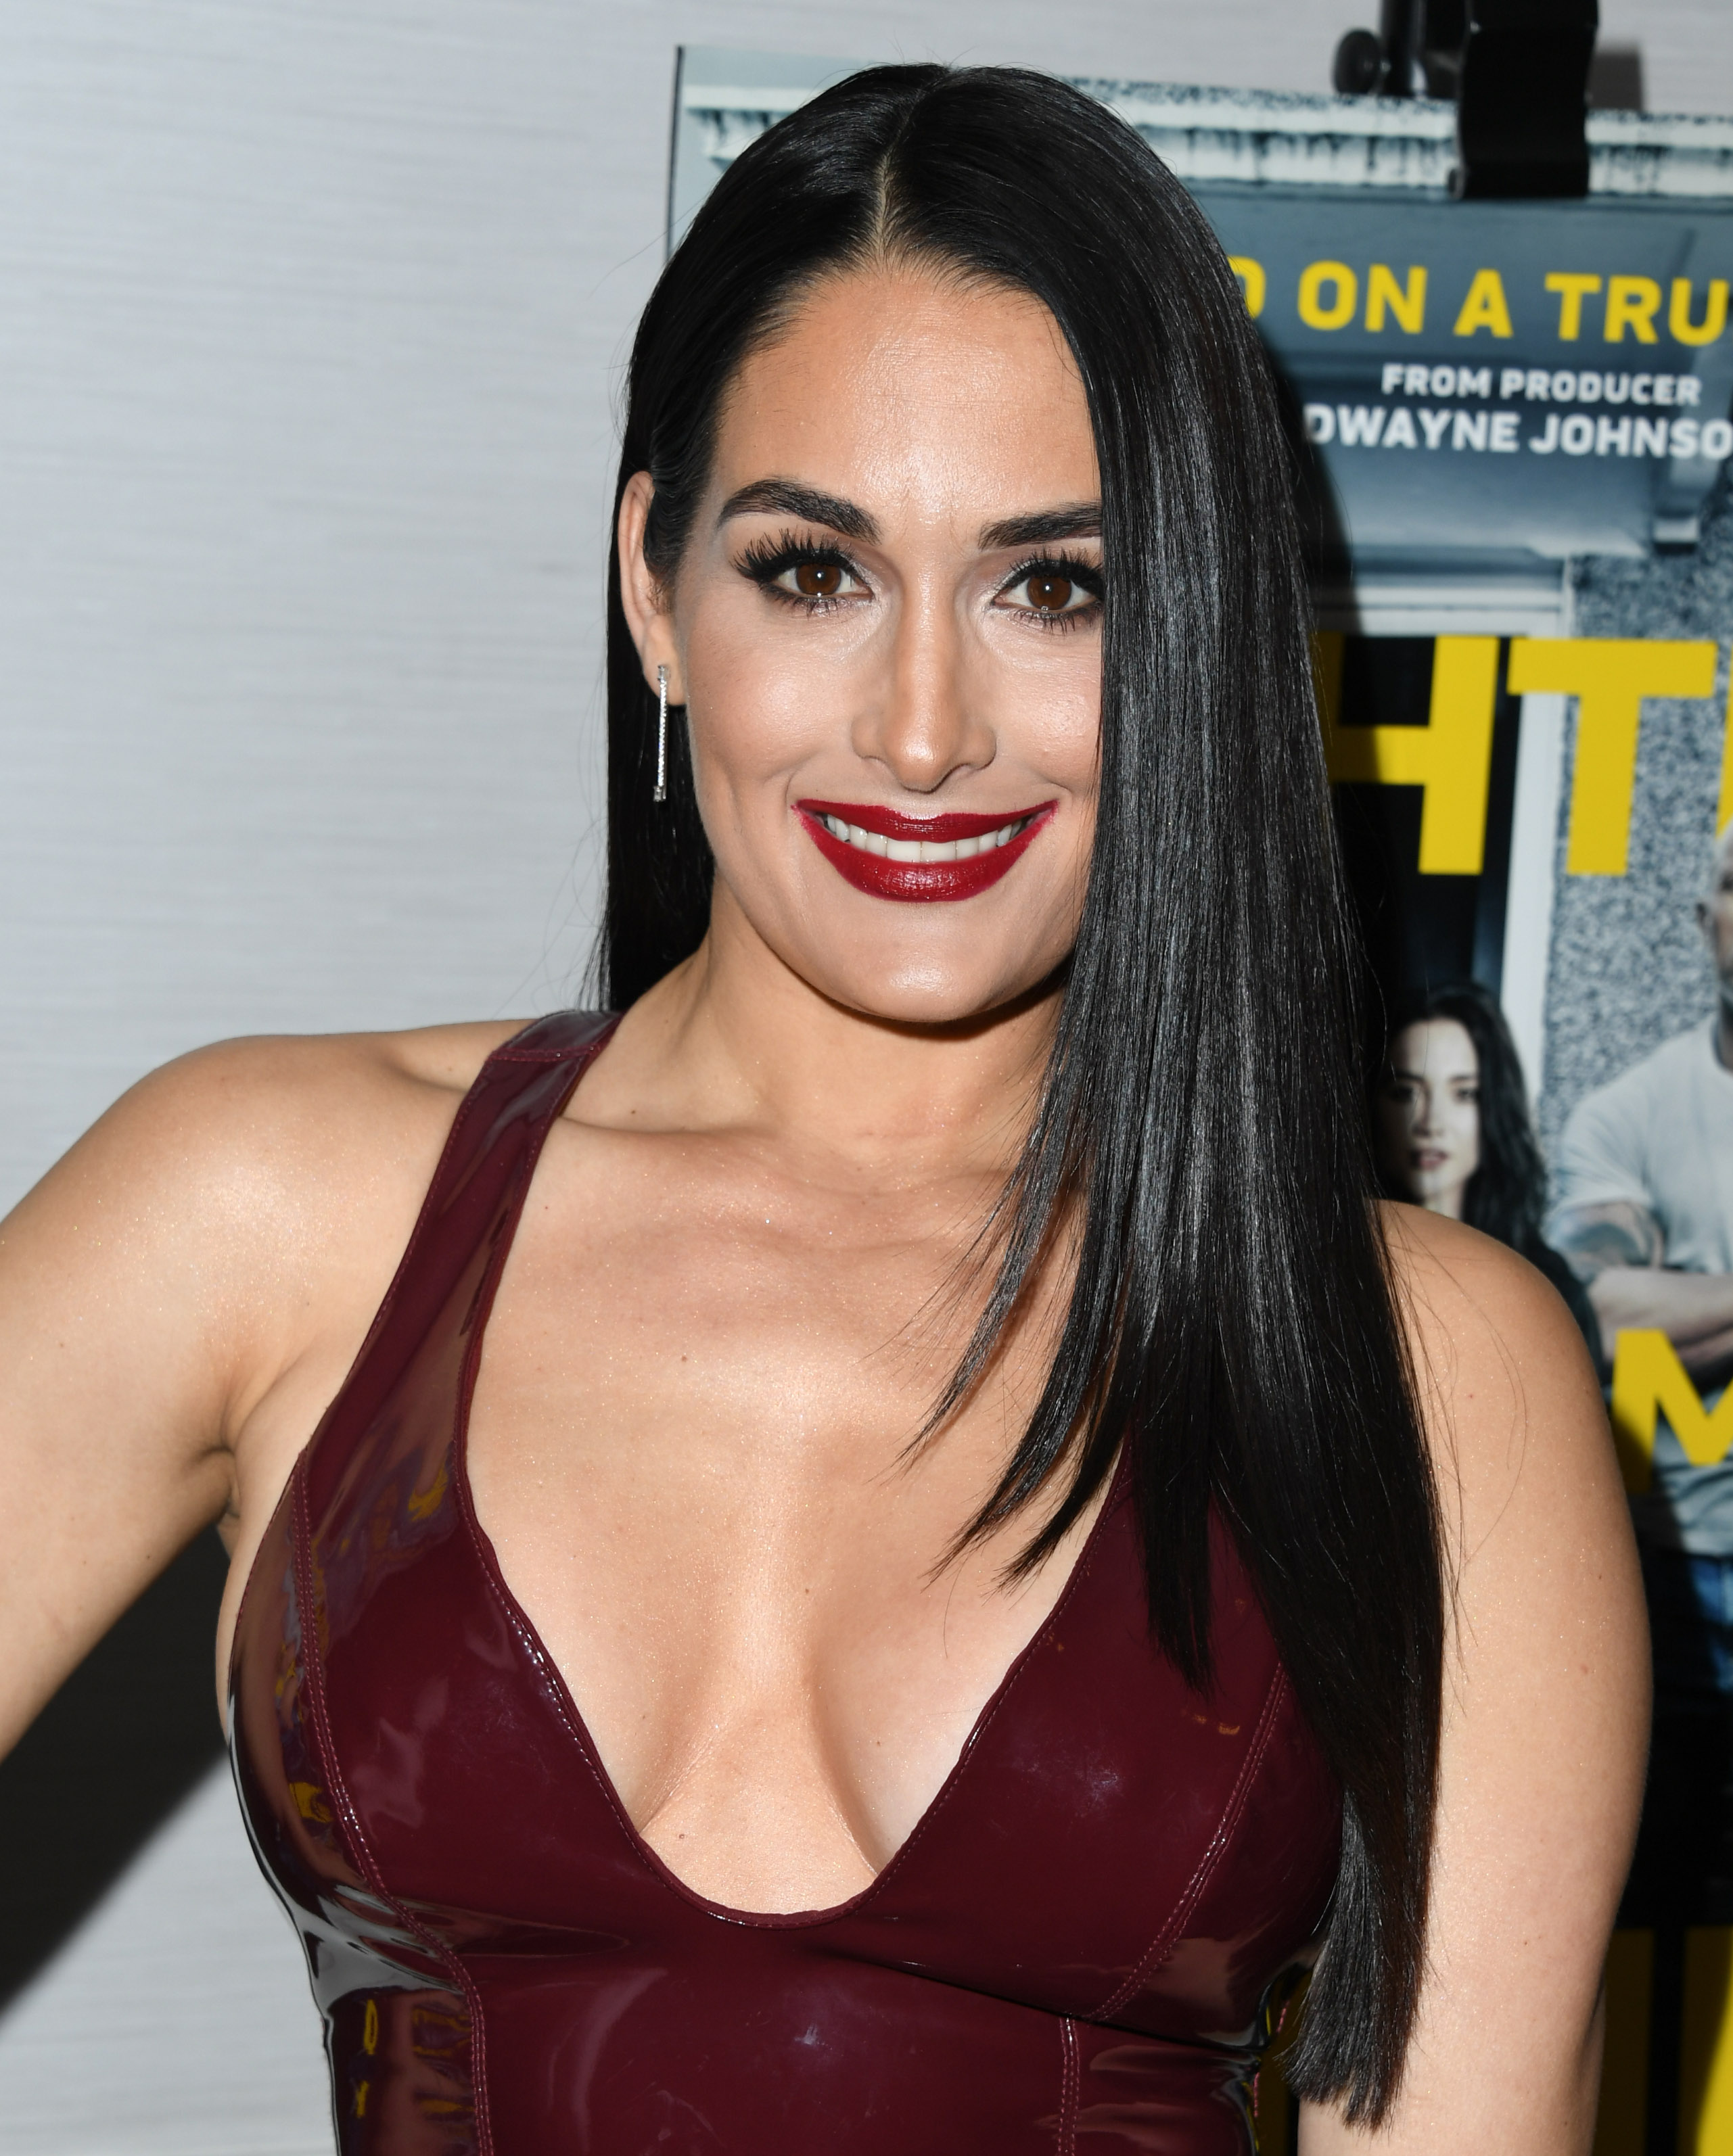 Nikki Bella attends 'Fighting With My Family' Los Angeles Tastemaker Screening at The London Hotel on February 20, 2019, in West Hollywood, California. (Getty Images)